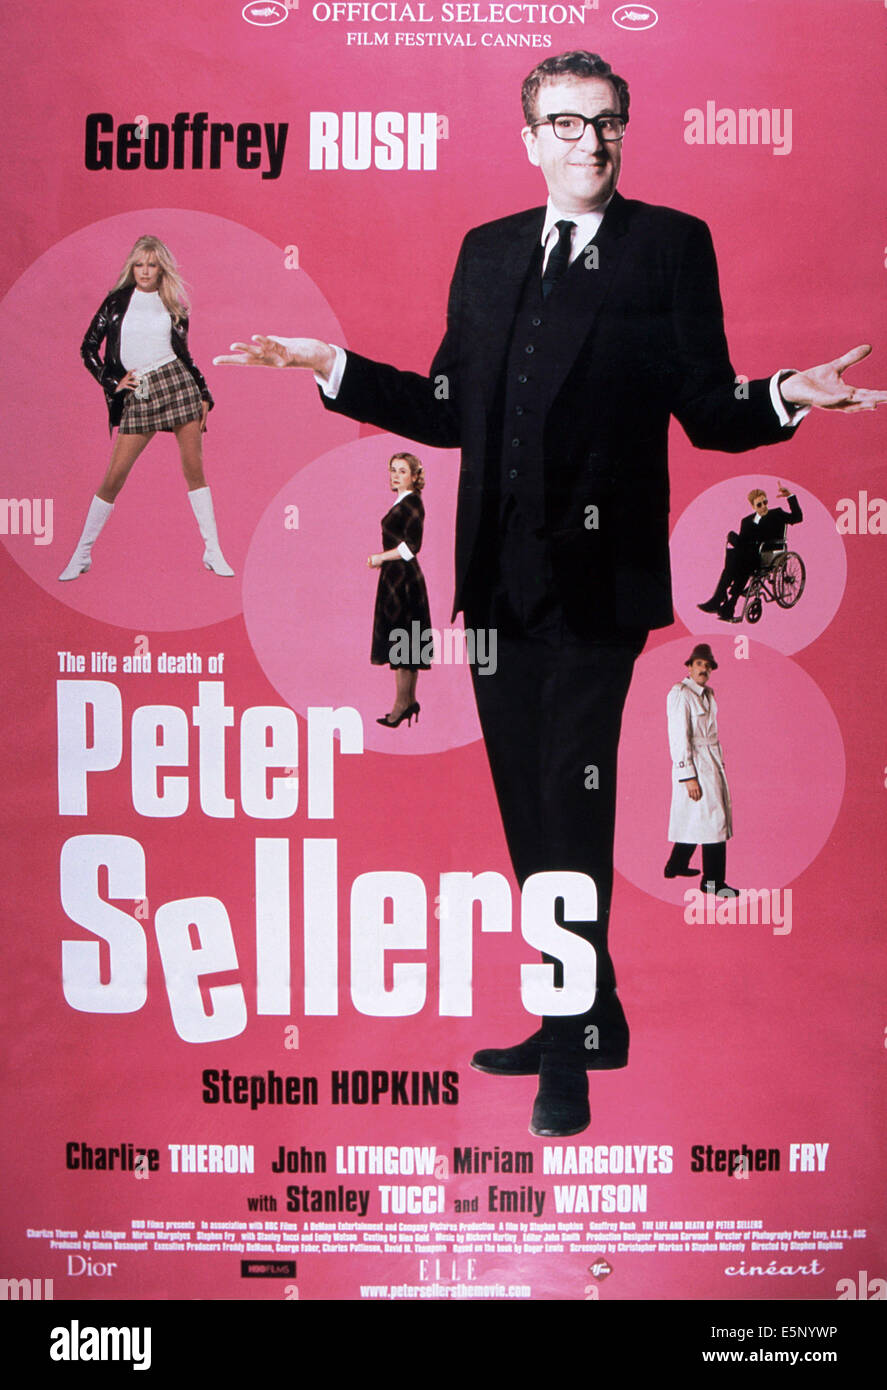 THE LIFE AND DEATH OF PETER SELLERS, poster, Charlize Theron (top left), Emily Watson (center), Geoffrey Rush (right), - Stock Image